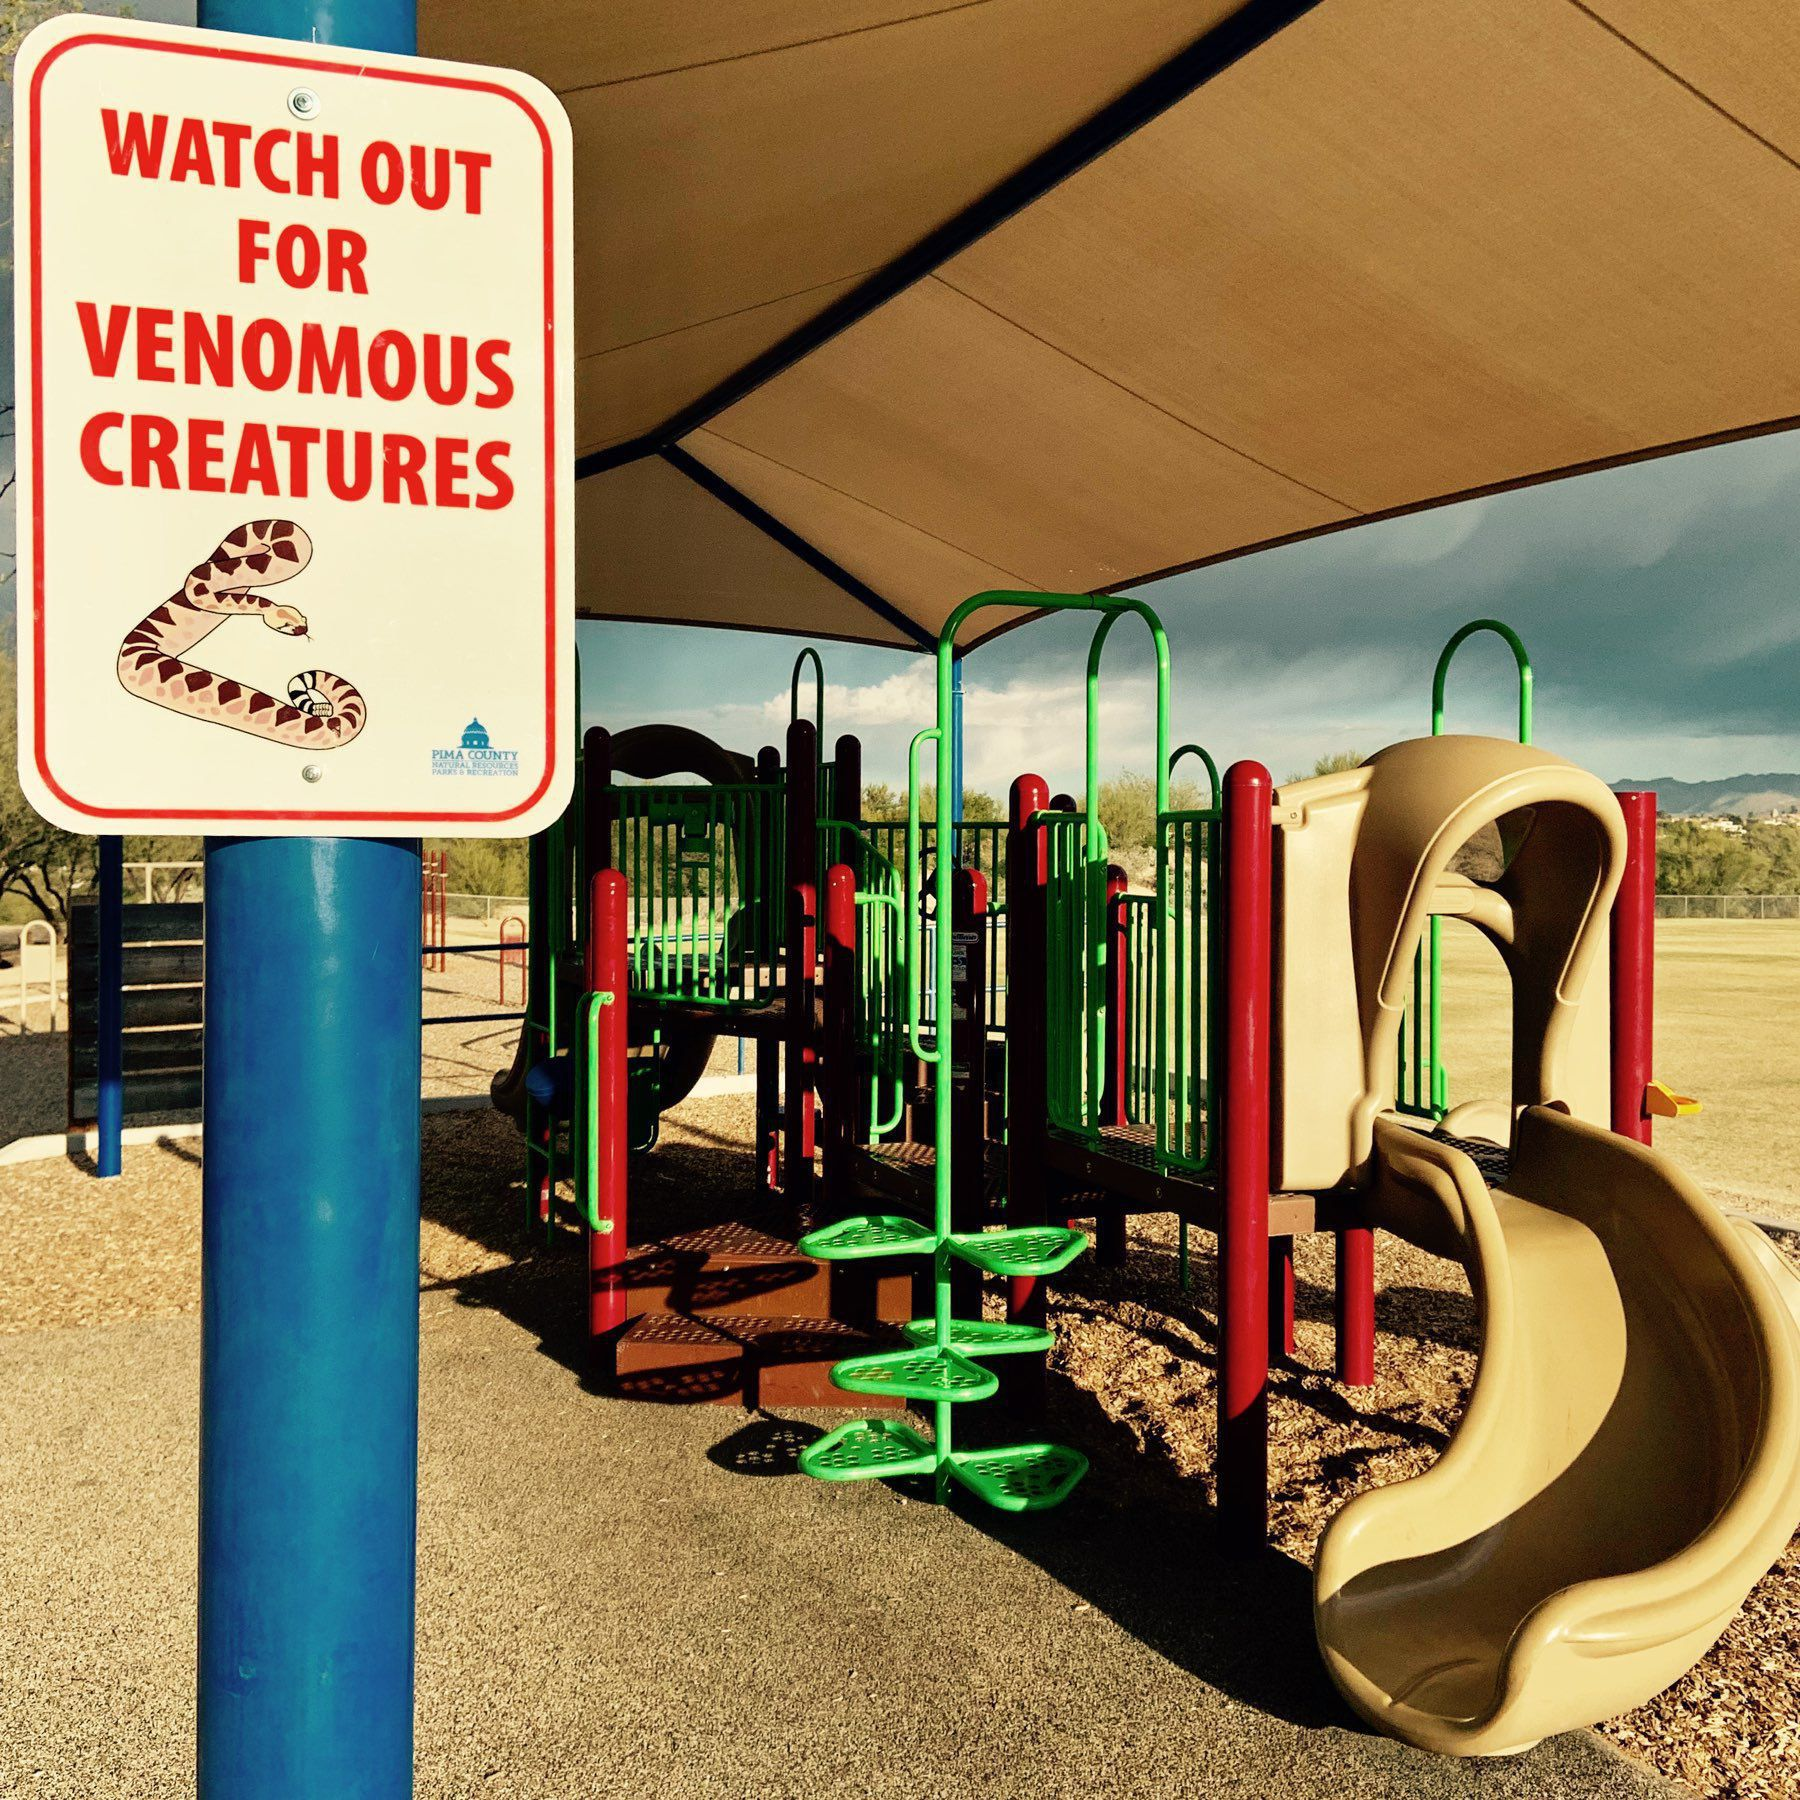 Sign Warning About Venomous Creautures at a Park in Pima County